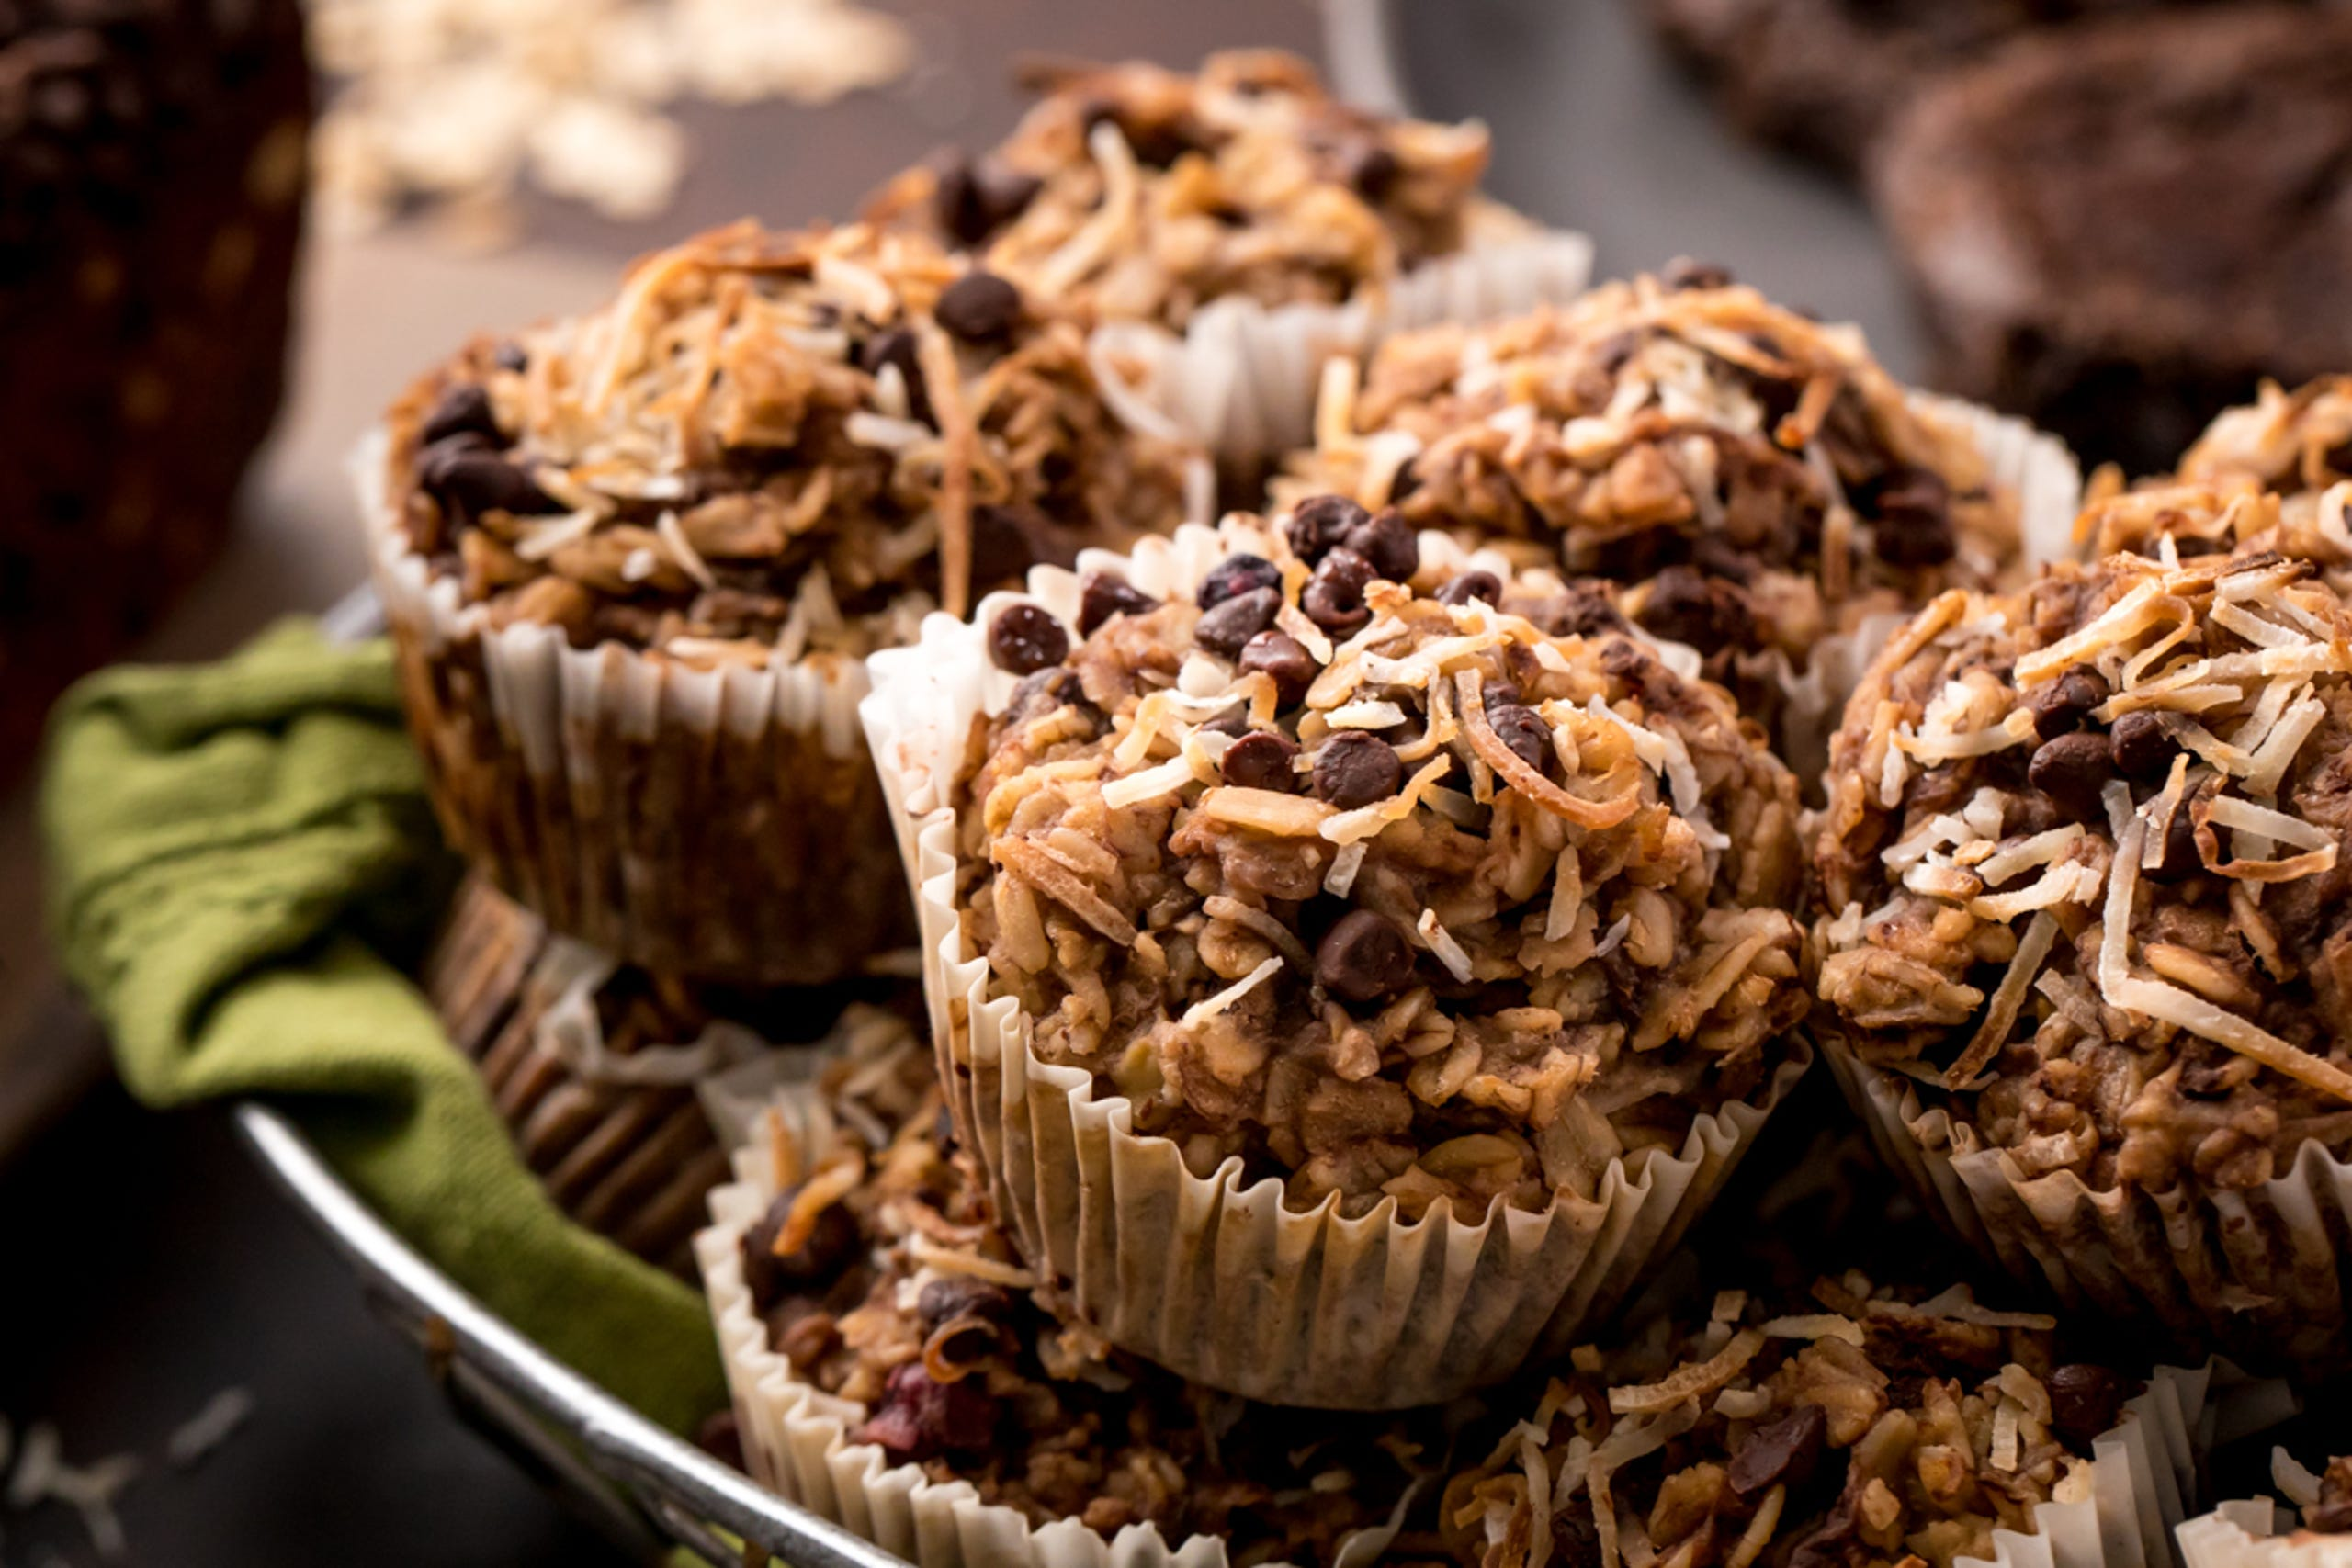 """If you're looking for a healthier option for your kids to bring to school this Valentine's Day, these <a href=""""https://youtu.be/sJ8Nrgw8n2E?utm_source=veganvalentinesdesserts"""" target=""""_blank"""">breakfast oatmeal cupcakes</a> are the perfect classroom snack.Katie Higgins, of the popular healthy dessert blog<a href=""""https://chocolatecoveredkatie.com/?utm_source=veganvalentinesdesserts"""" rel="""